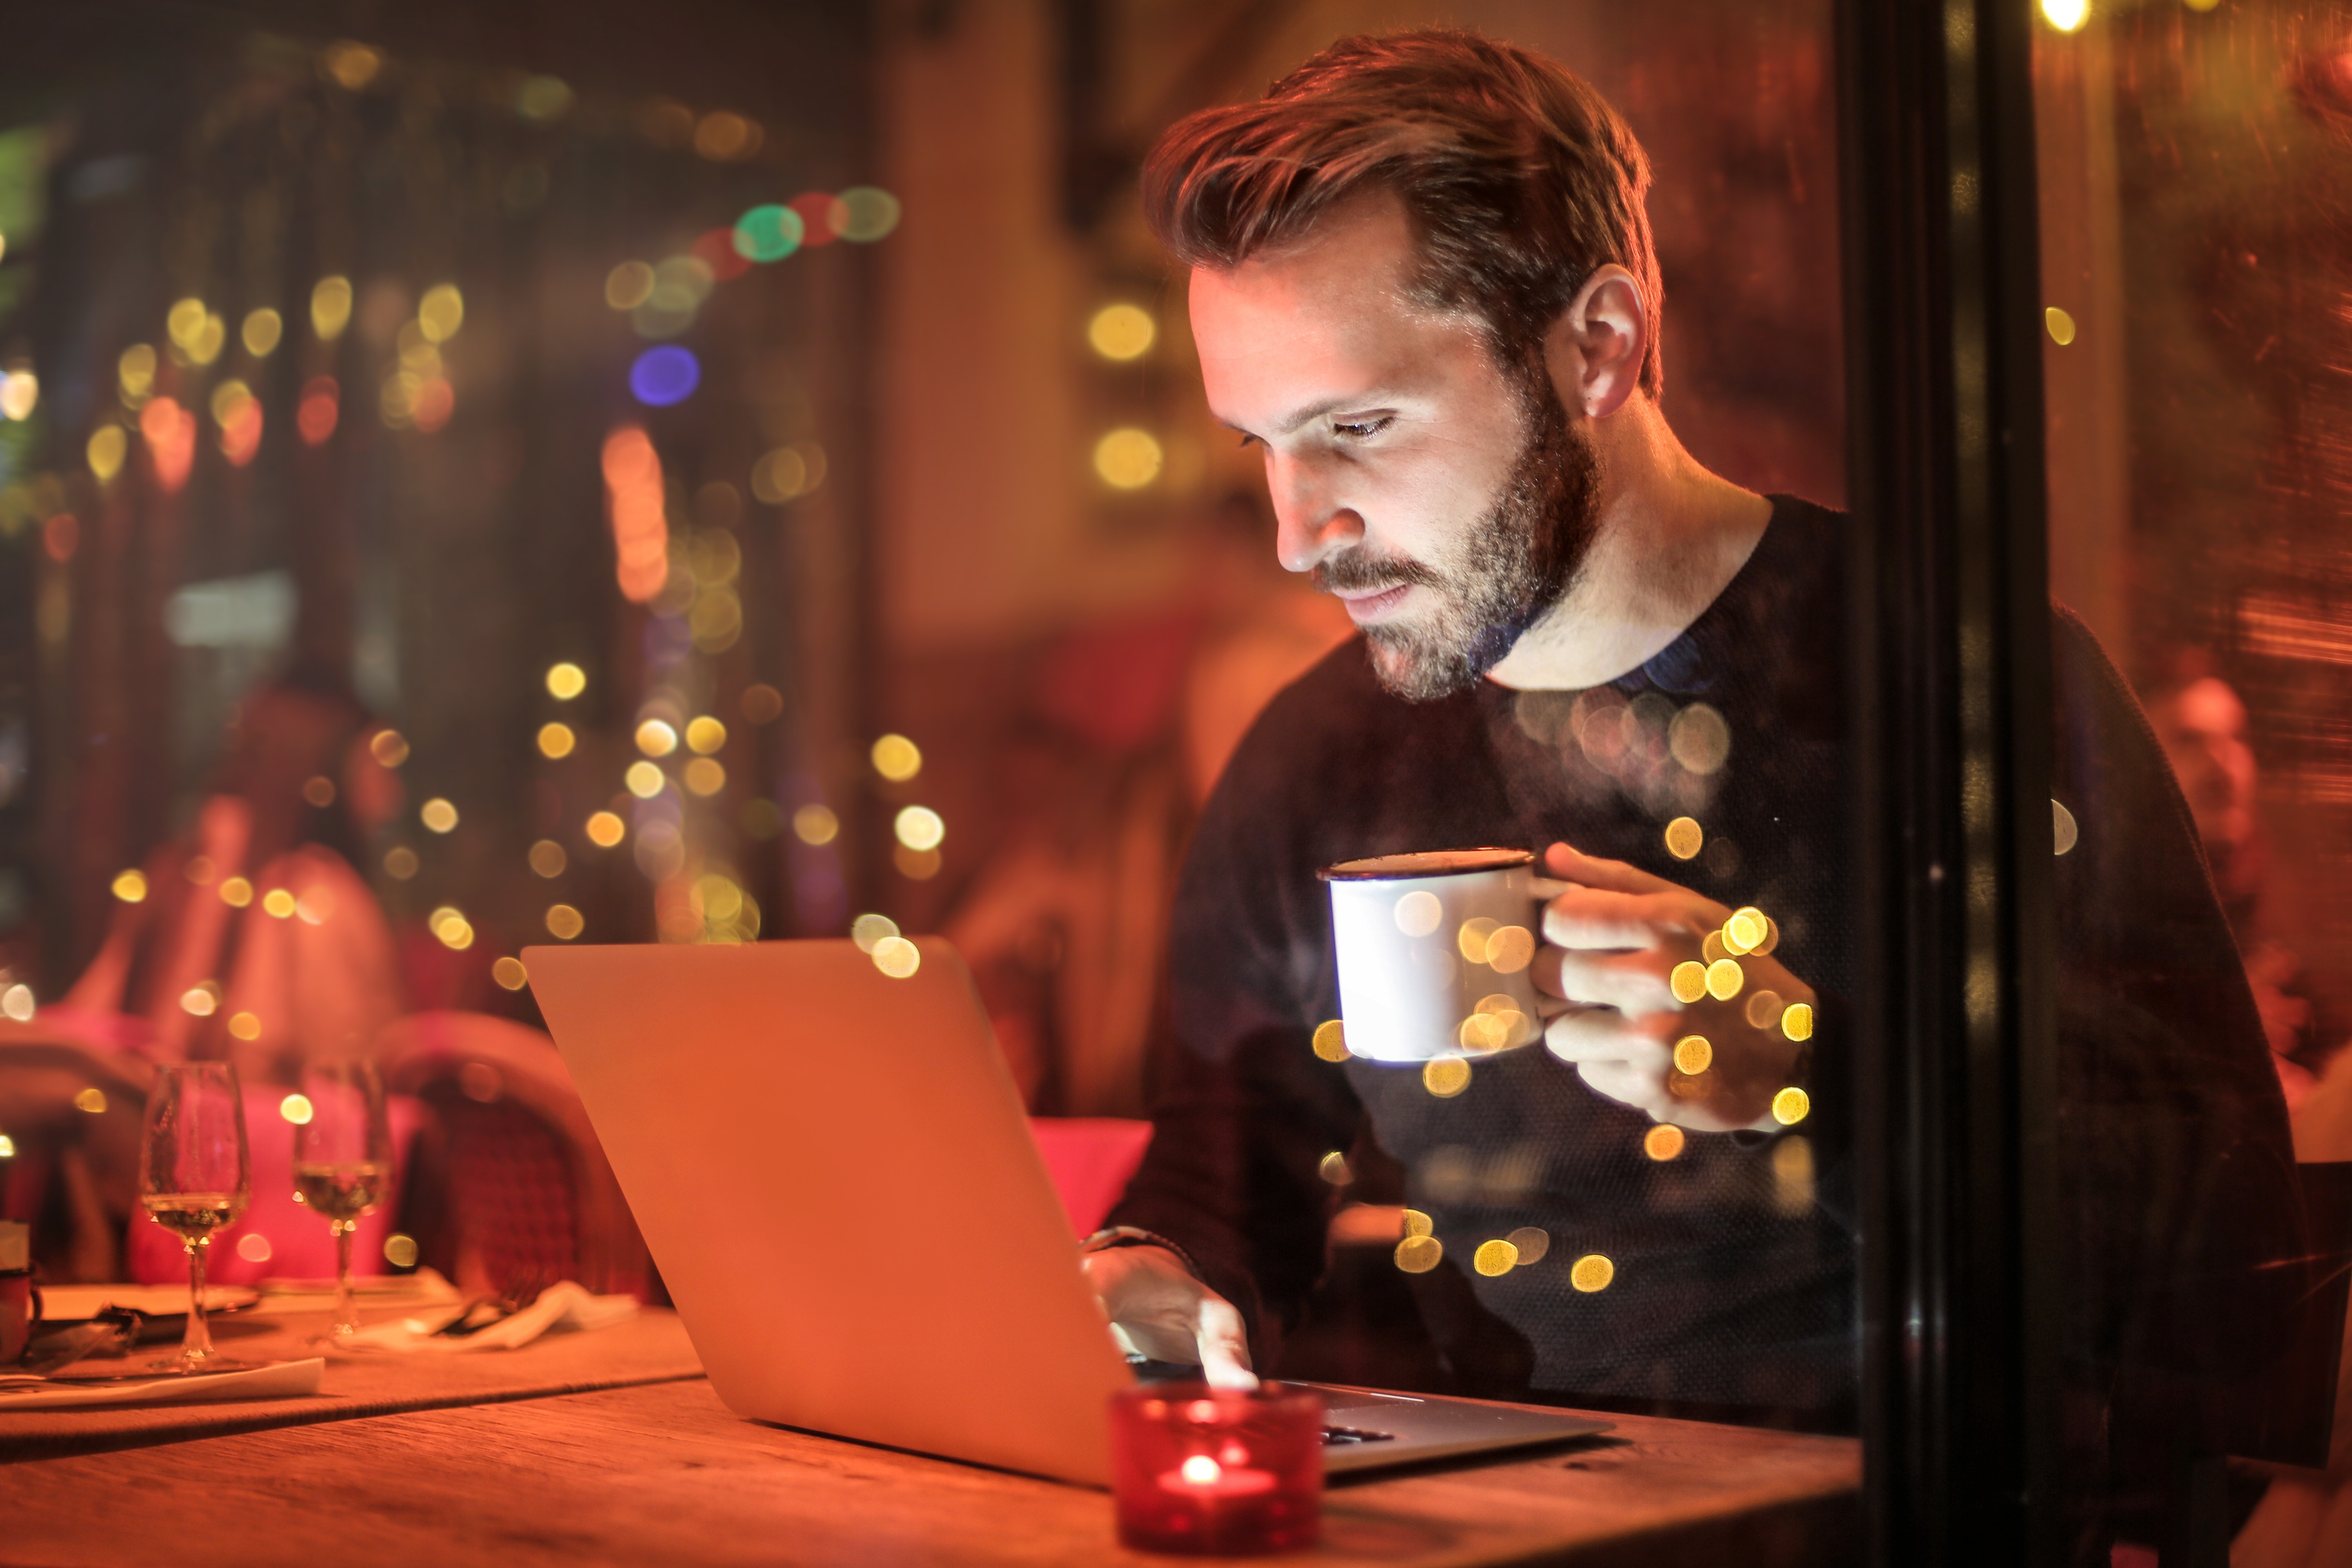 Man holding mug in front of laptop photo